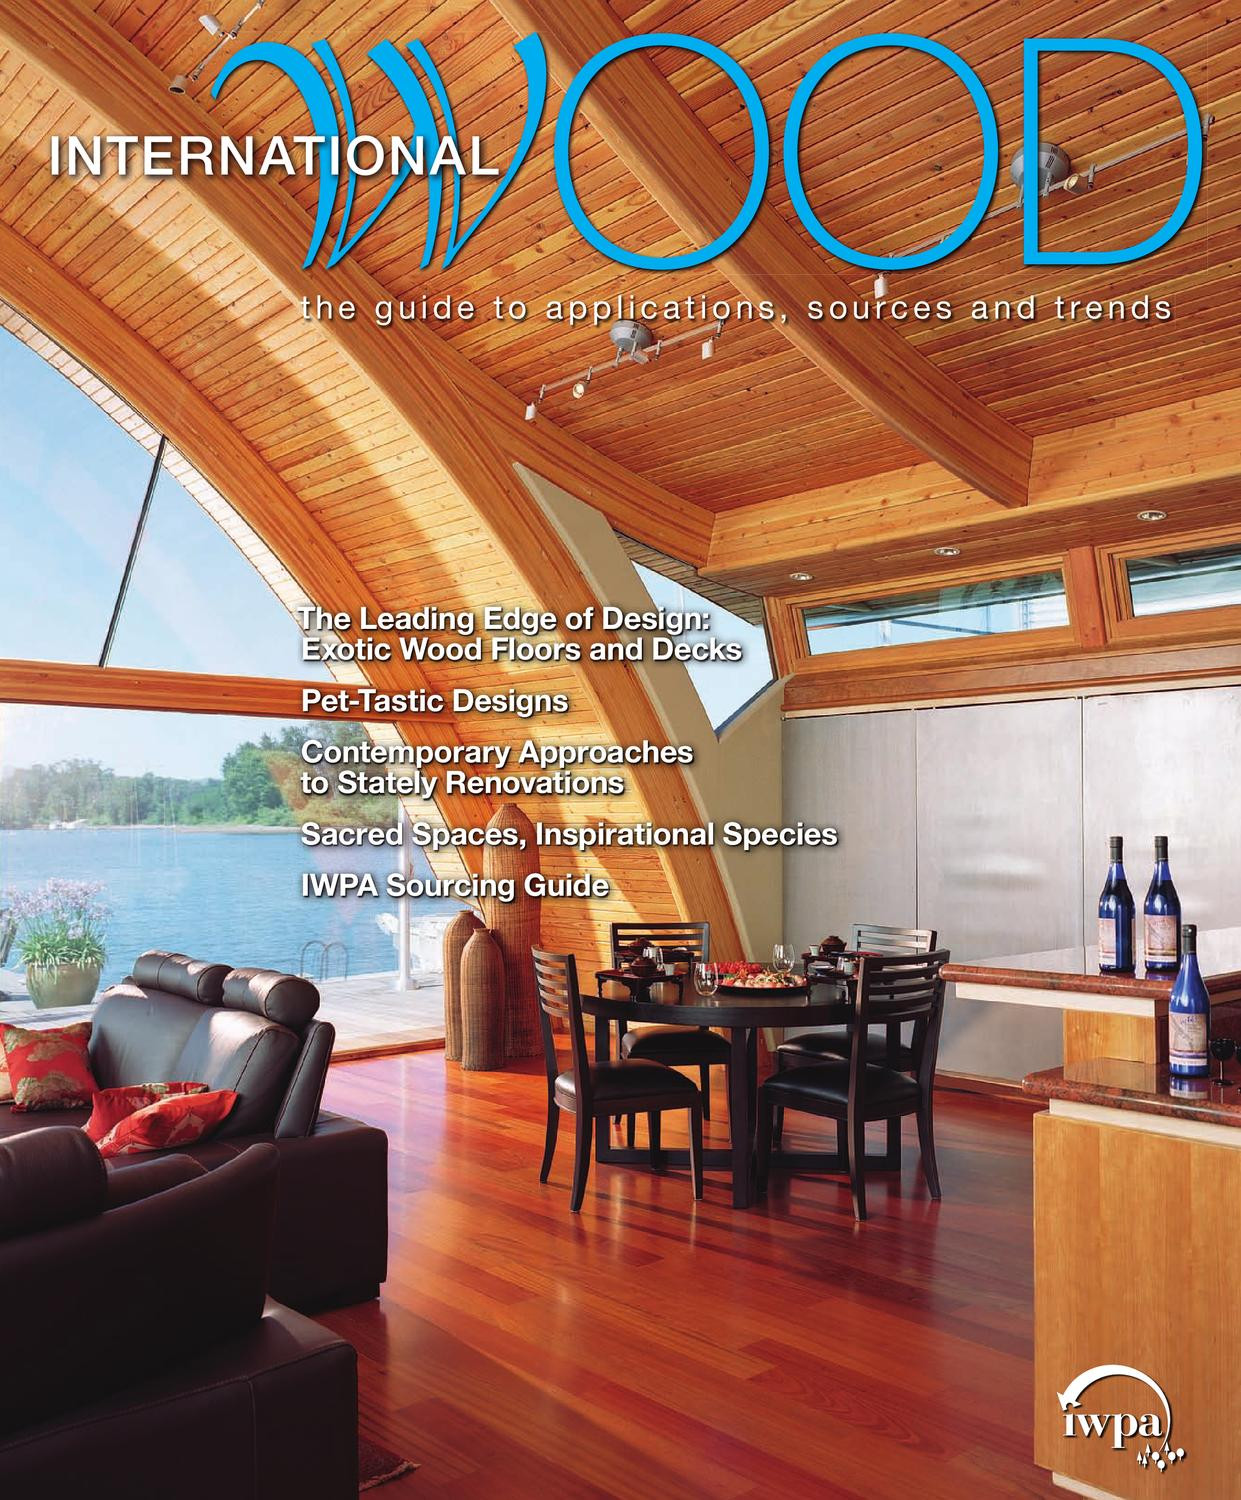 eucalyptus hardwood flooring reviews of international wood magazine 09 by bedford falls communications issuu with regard to page 1